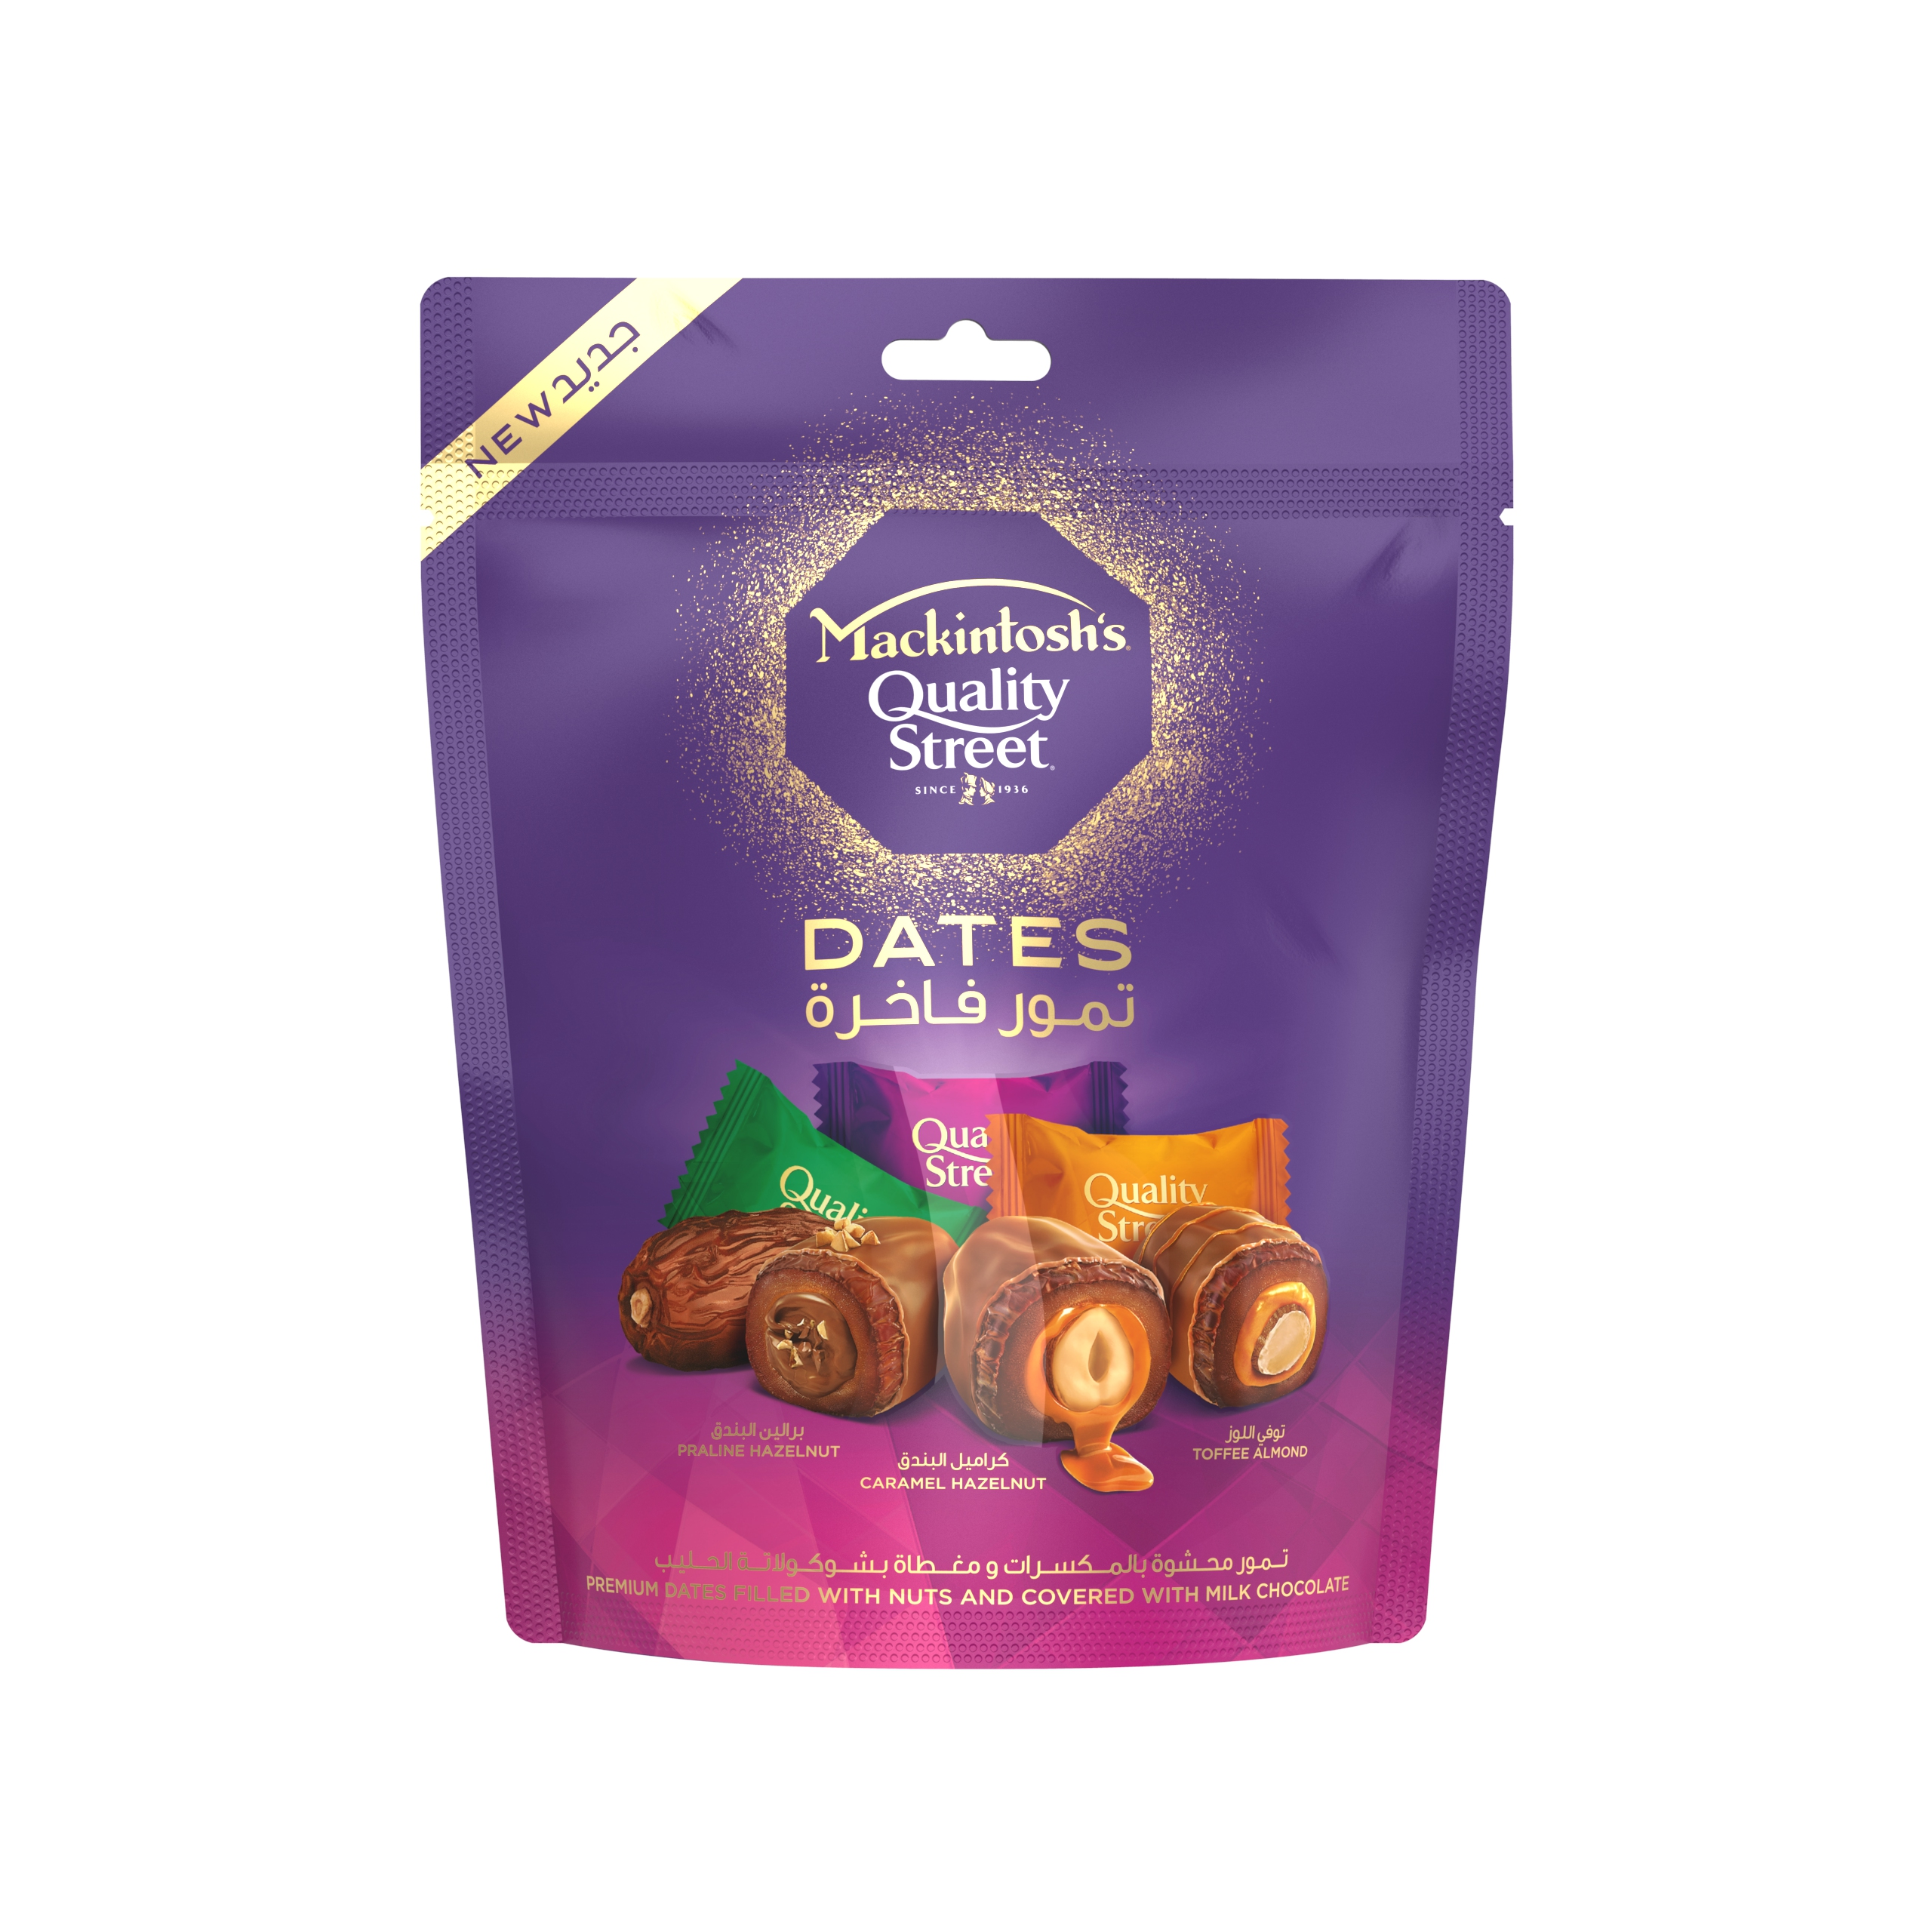 """In celebration of Mackintosh's Quality Street's 85th Anniversary, Nestlé launches """"DATES"""" inspired by the consumers in the region"""